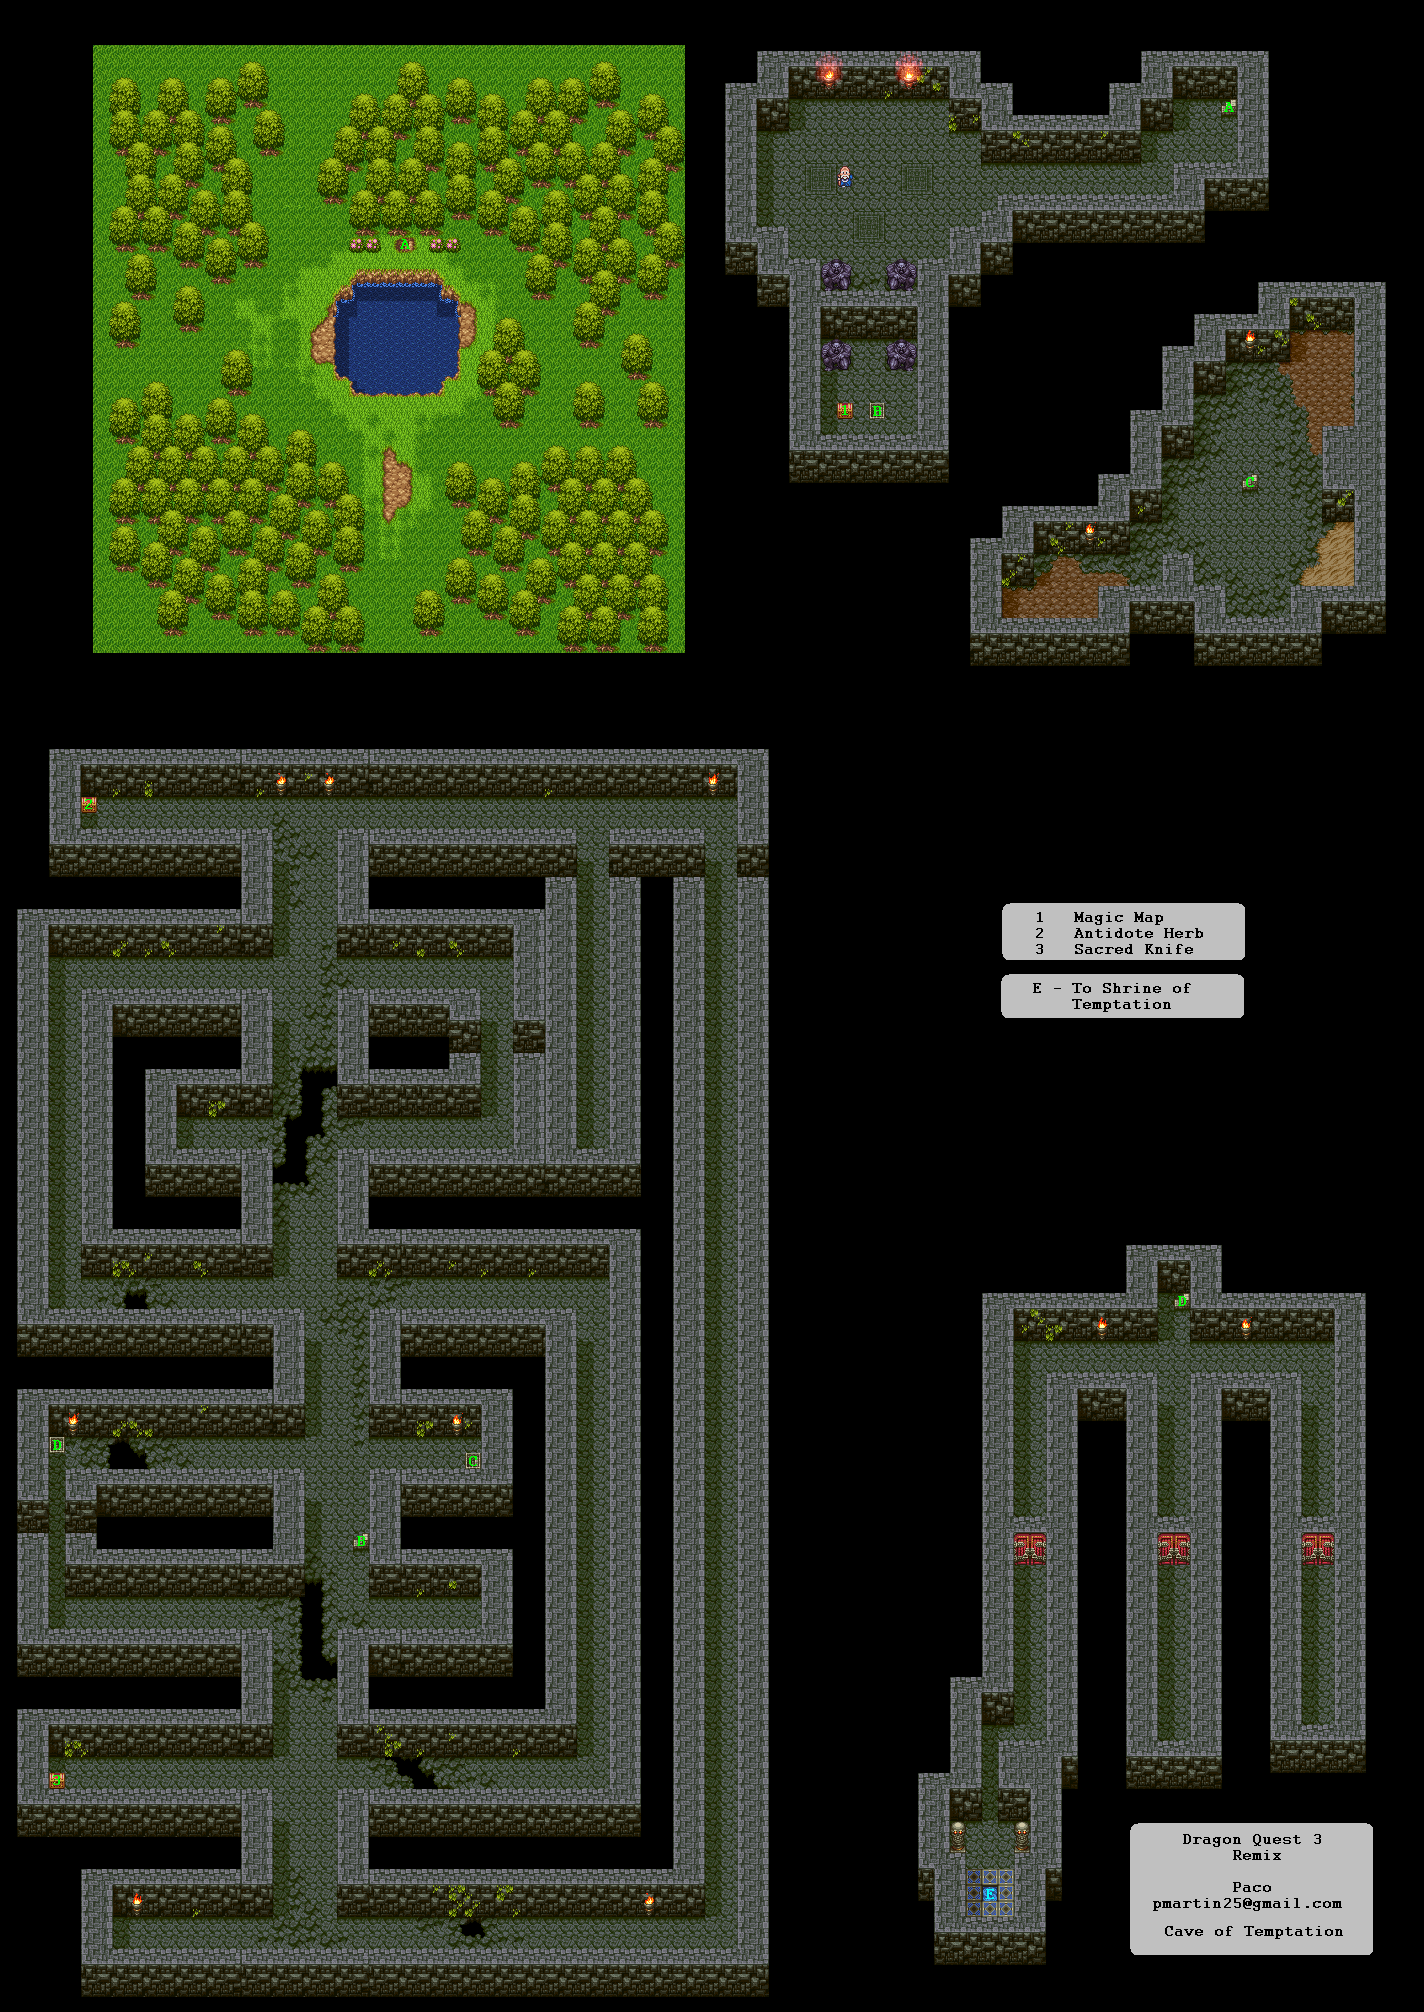 Dragon Quest 3 World Map - Map Of The World